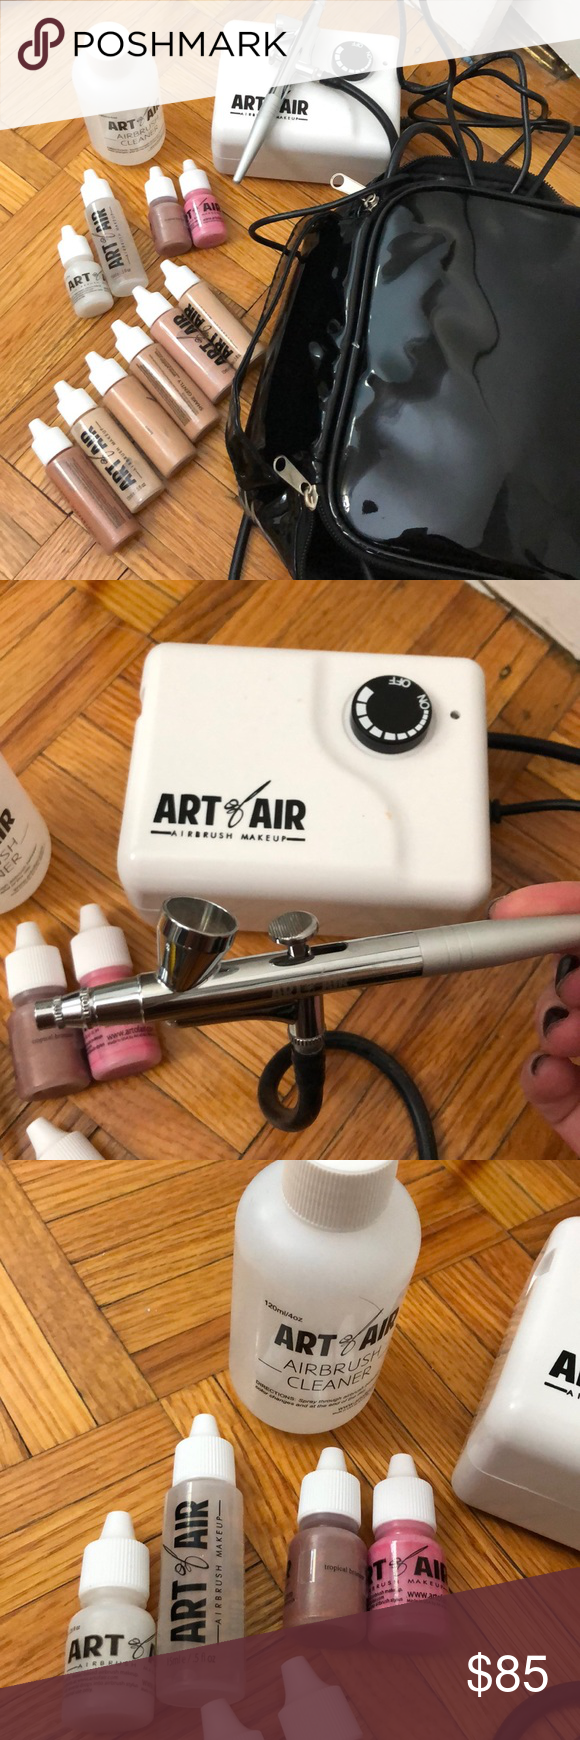 Art of air airbrush machine Brand new airbrush makeup